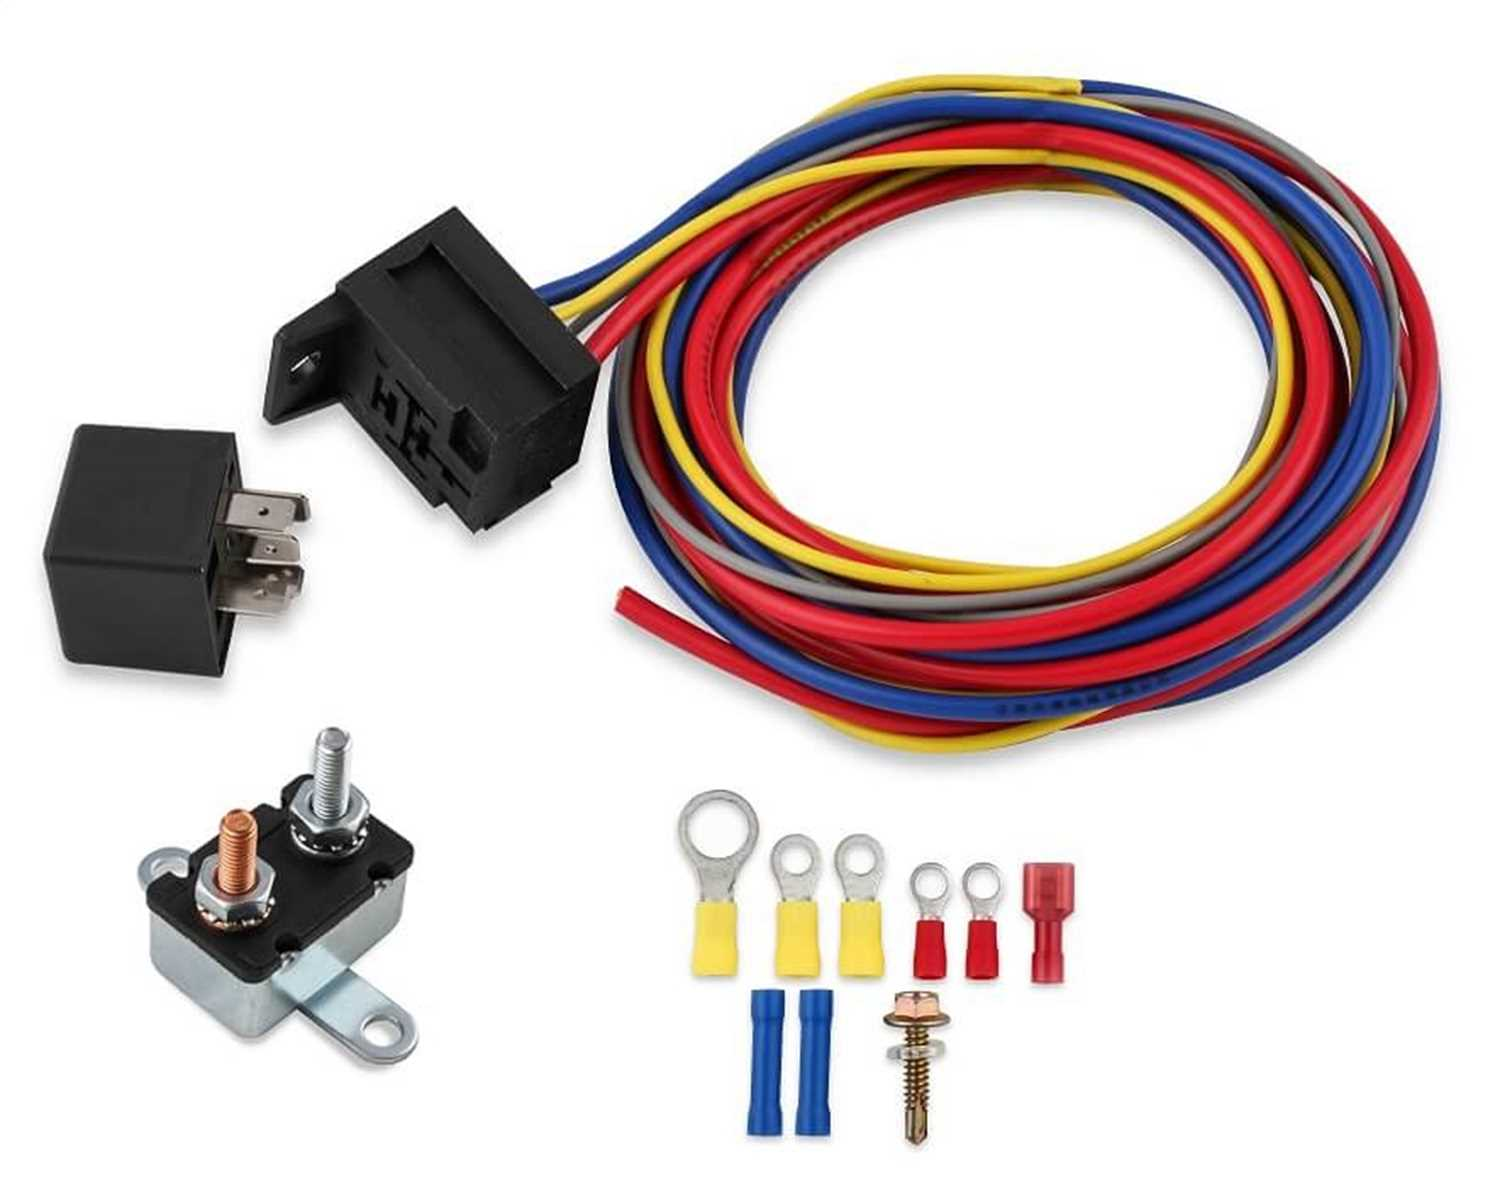 Mr. Gasket Electric Fuel Pump Harness and Relay Wiring Kit 40205G - 40205G